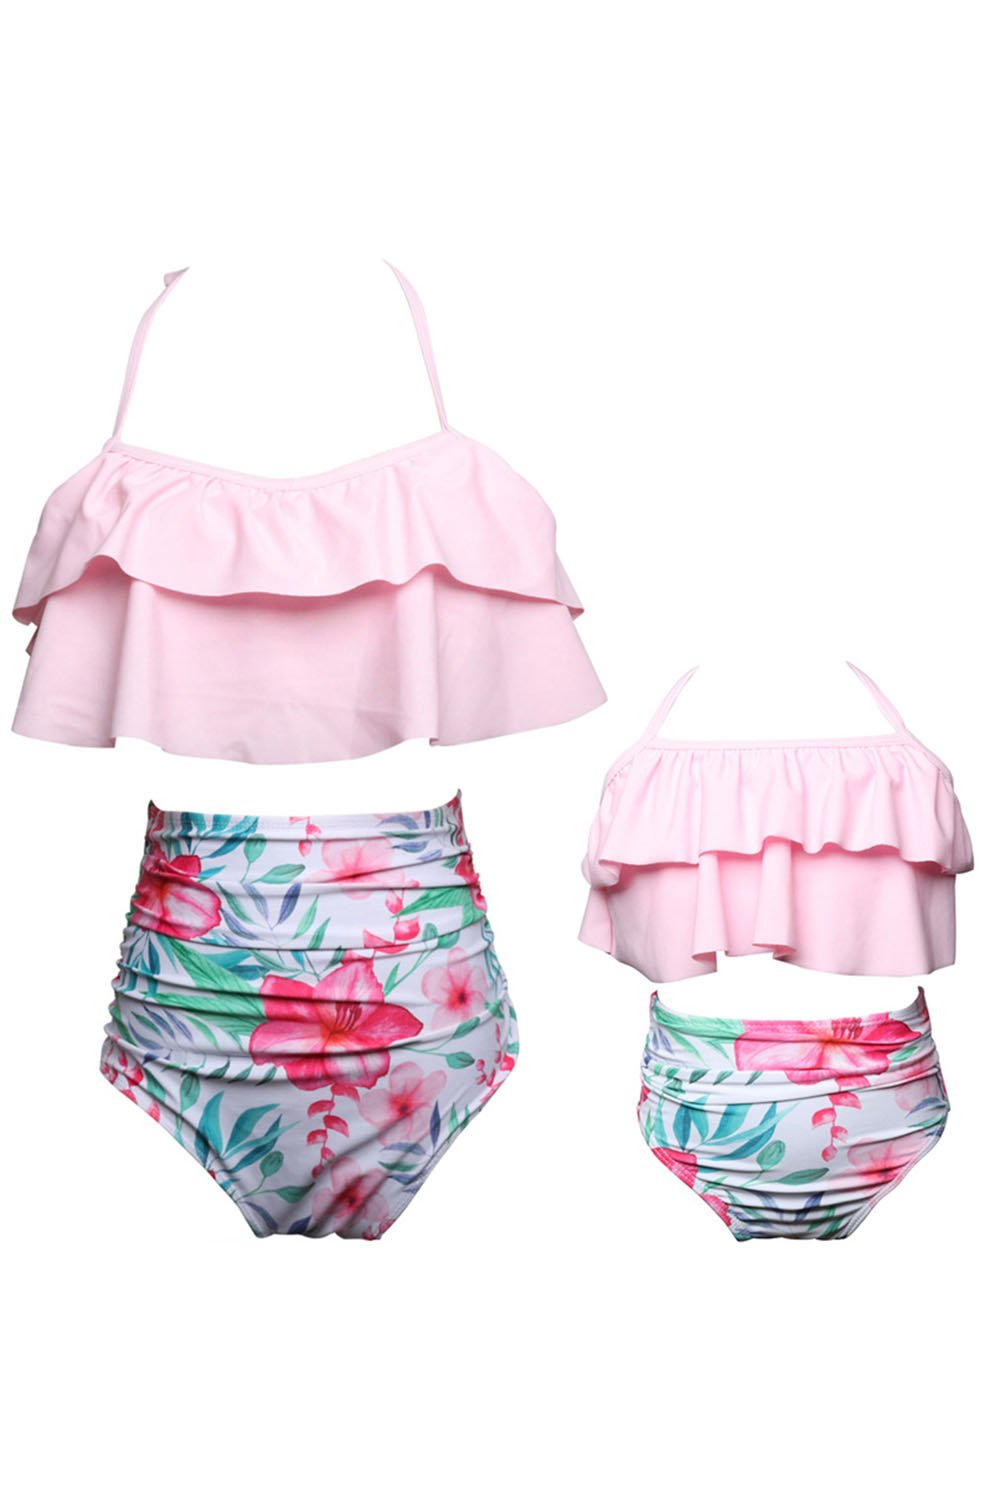 WIWIQS Summer Two-Piece Girls Bathing Suit Kid Girls Floral Pattern Halter Bikini Set (Pink,L)